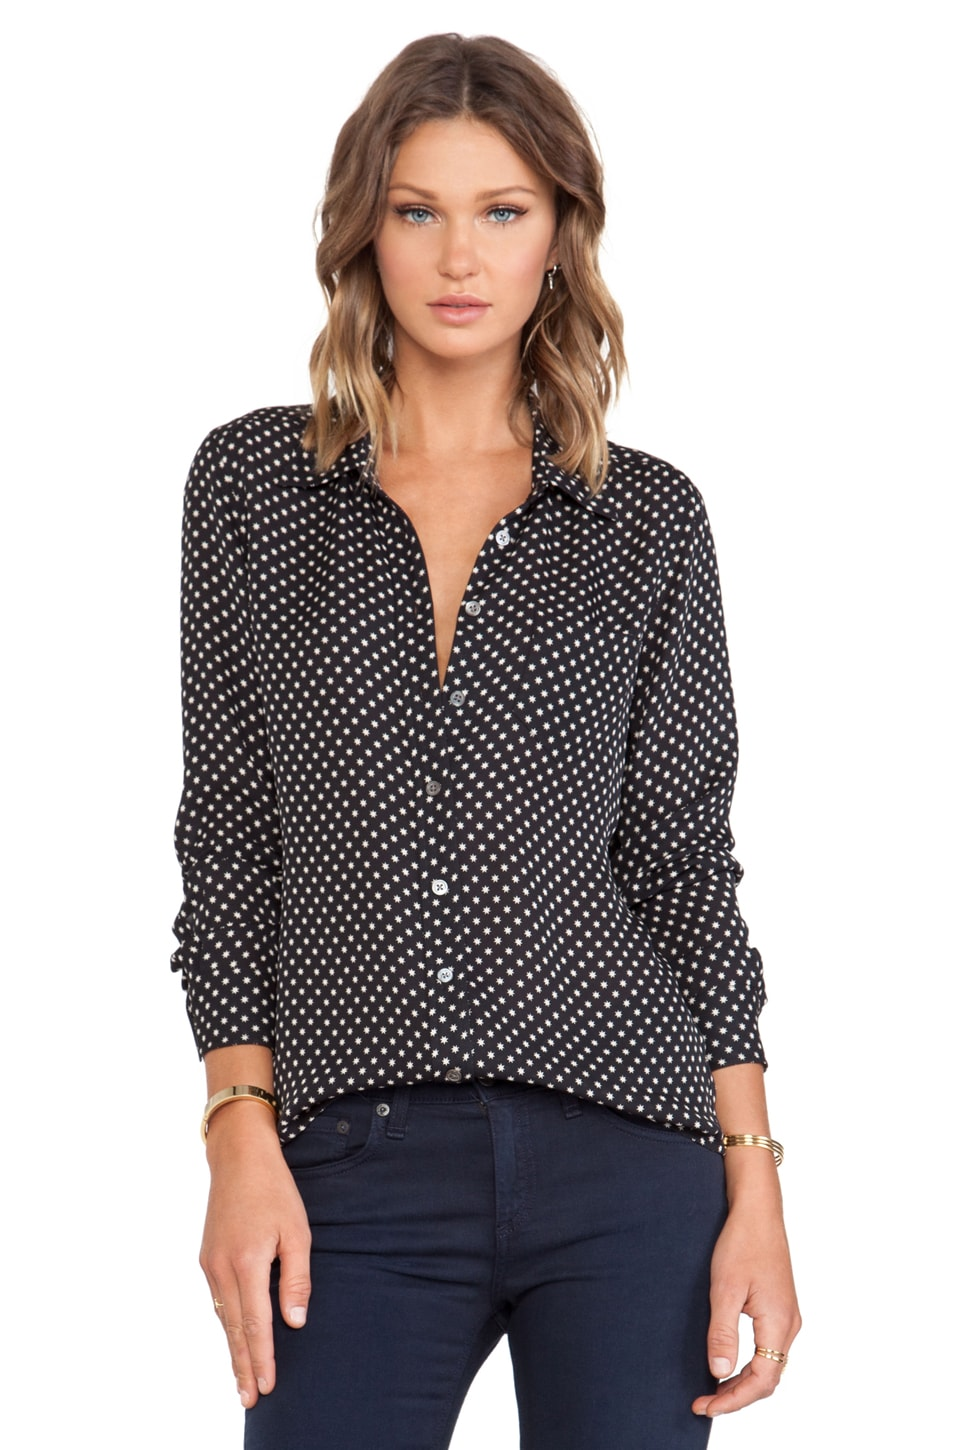 Equipment Brett Mini Tokyo Star Blouse in True Black